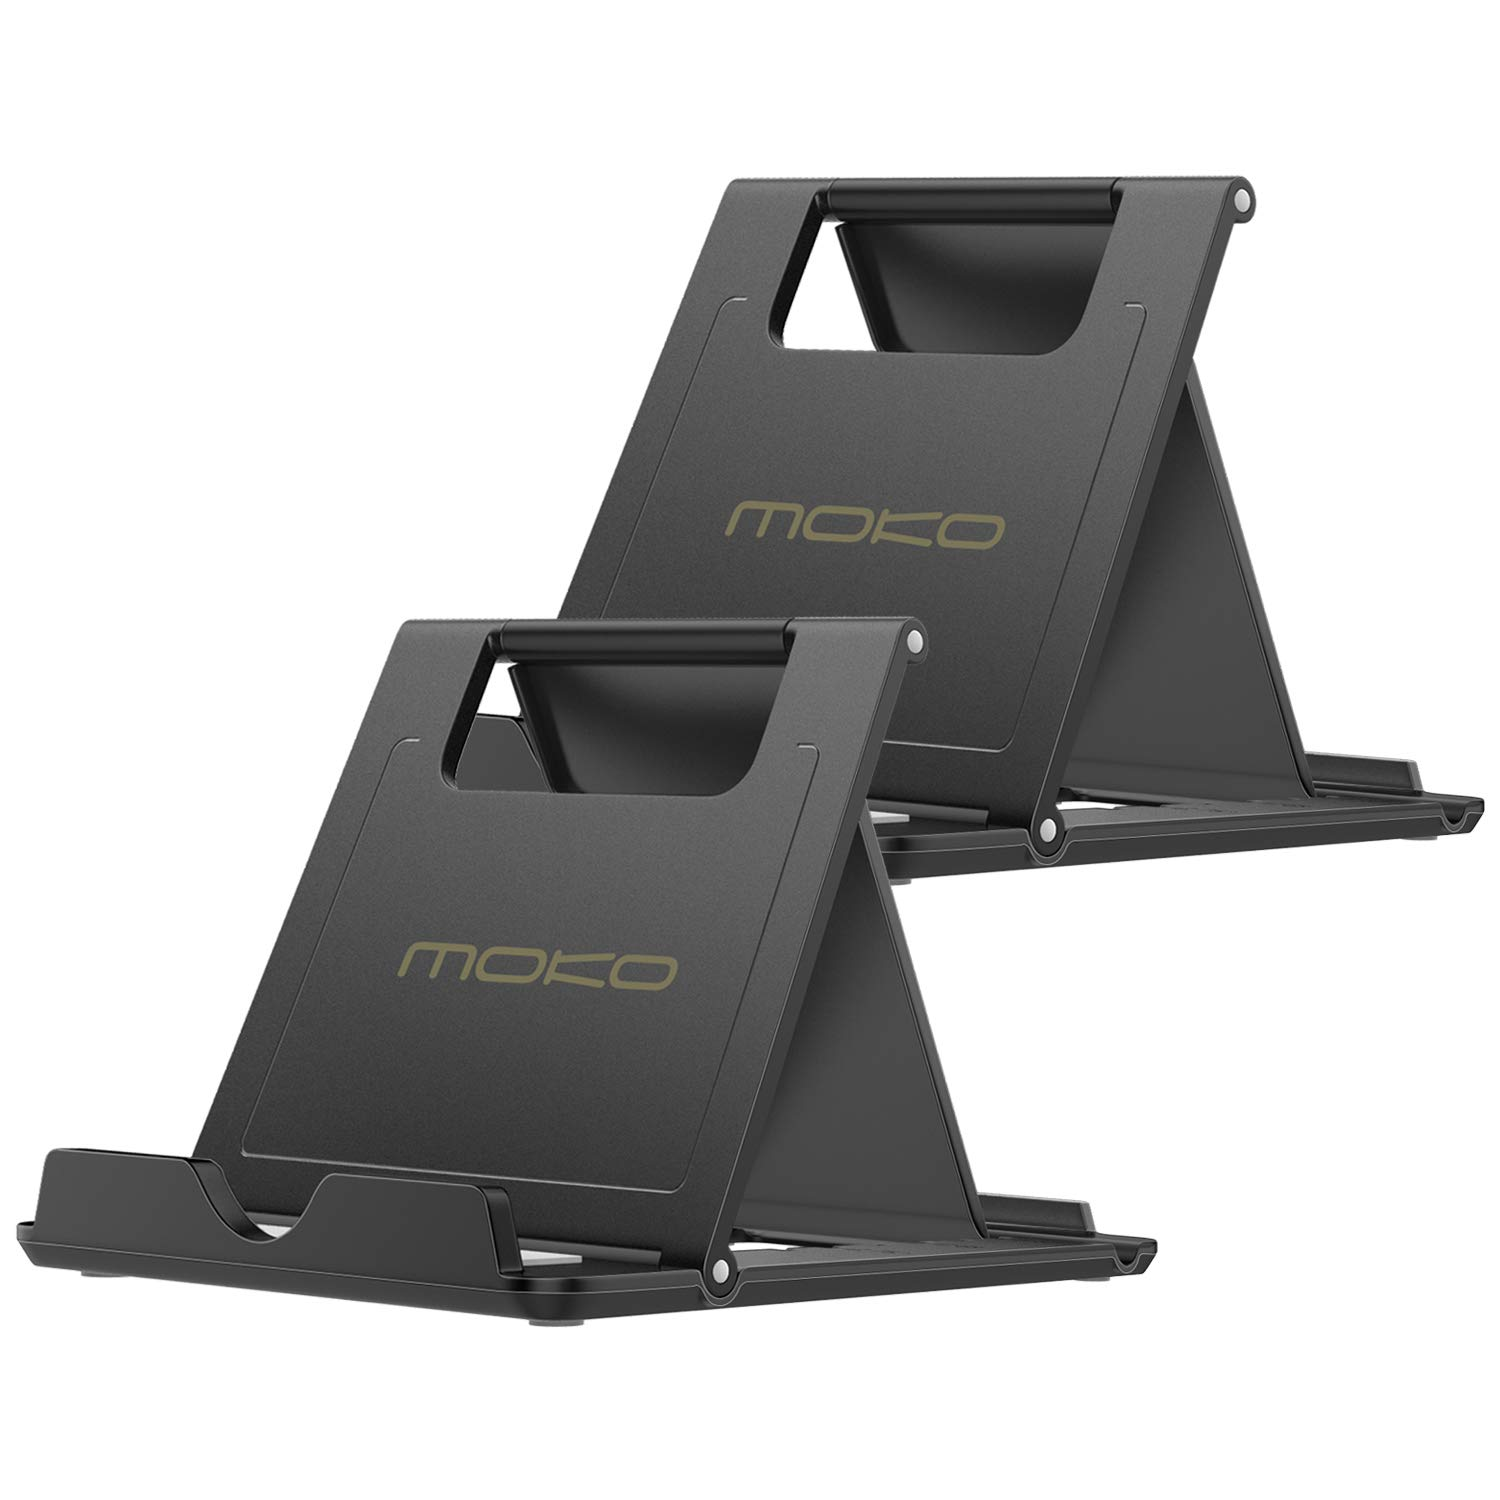 [2 Pack] MoKo Cellphone/Tablet Stand, Foldable Desktop Holder Compatible with iPhone Xs/XS Max/XR/X Galaxy S10 New iPad Air 3rd Gen iPad Mini 5th Gen iPad Pro 11 2018 Nintendo Switch, Black